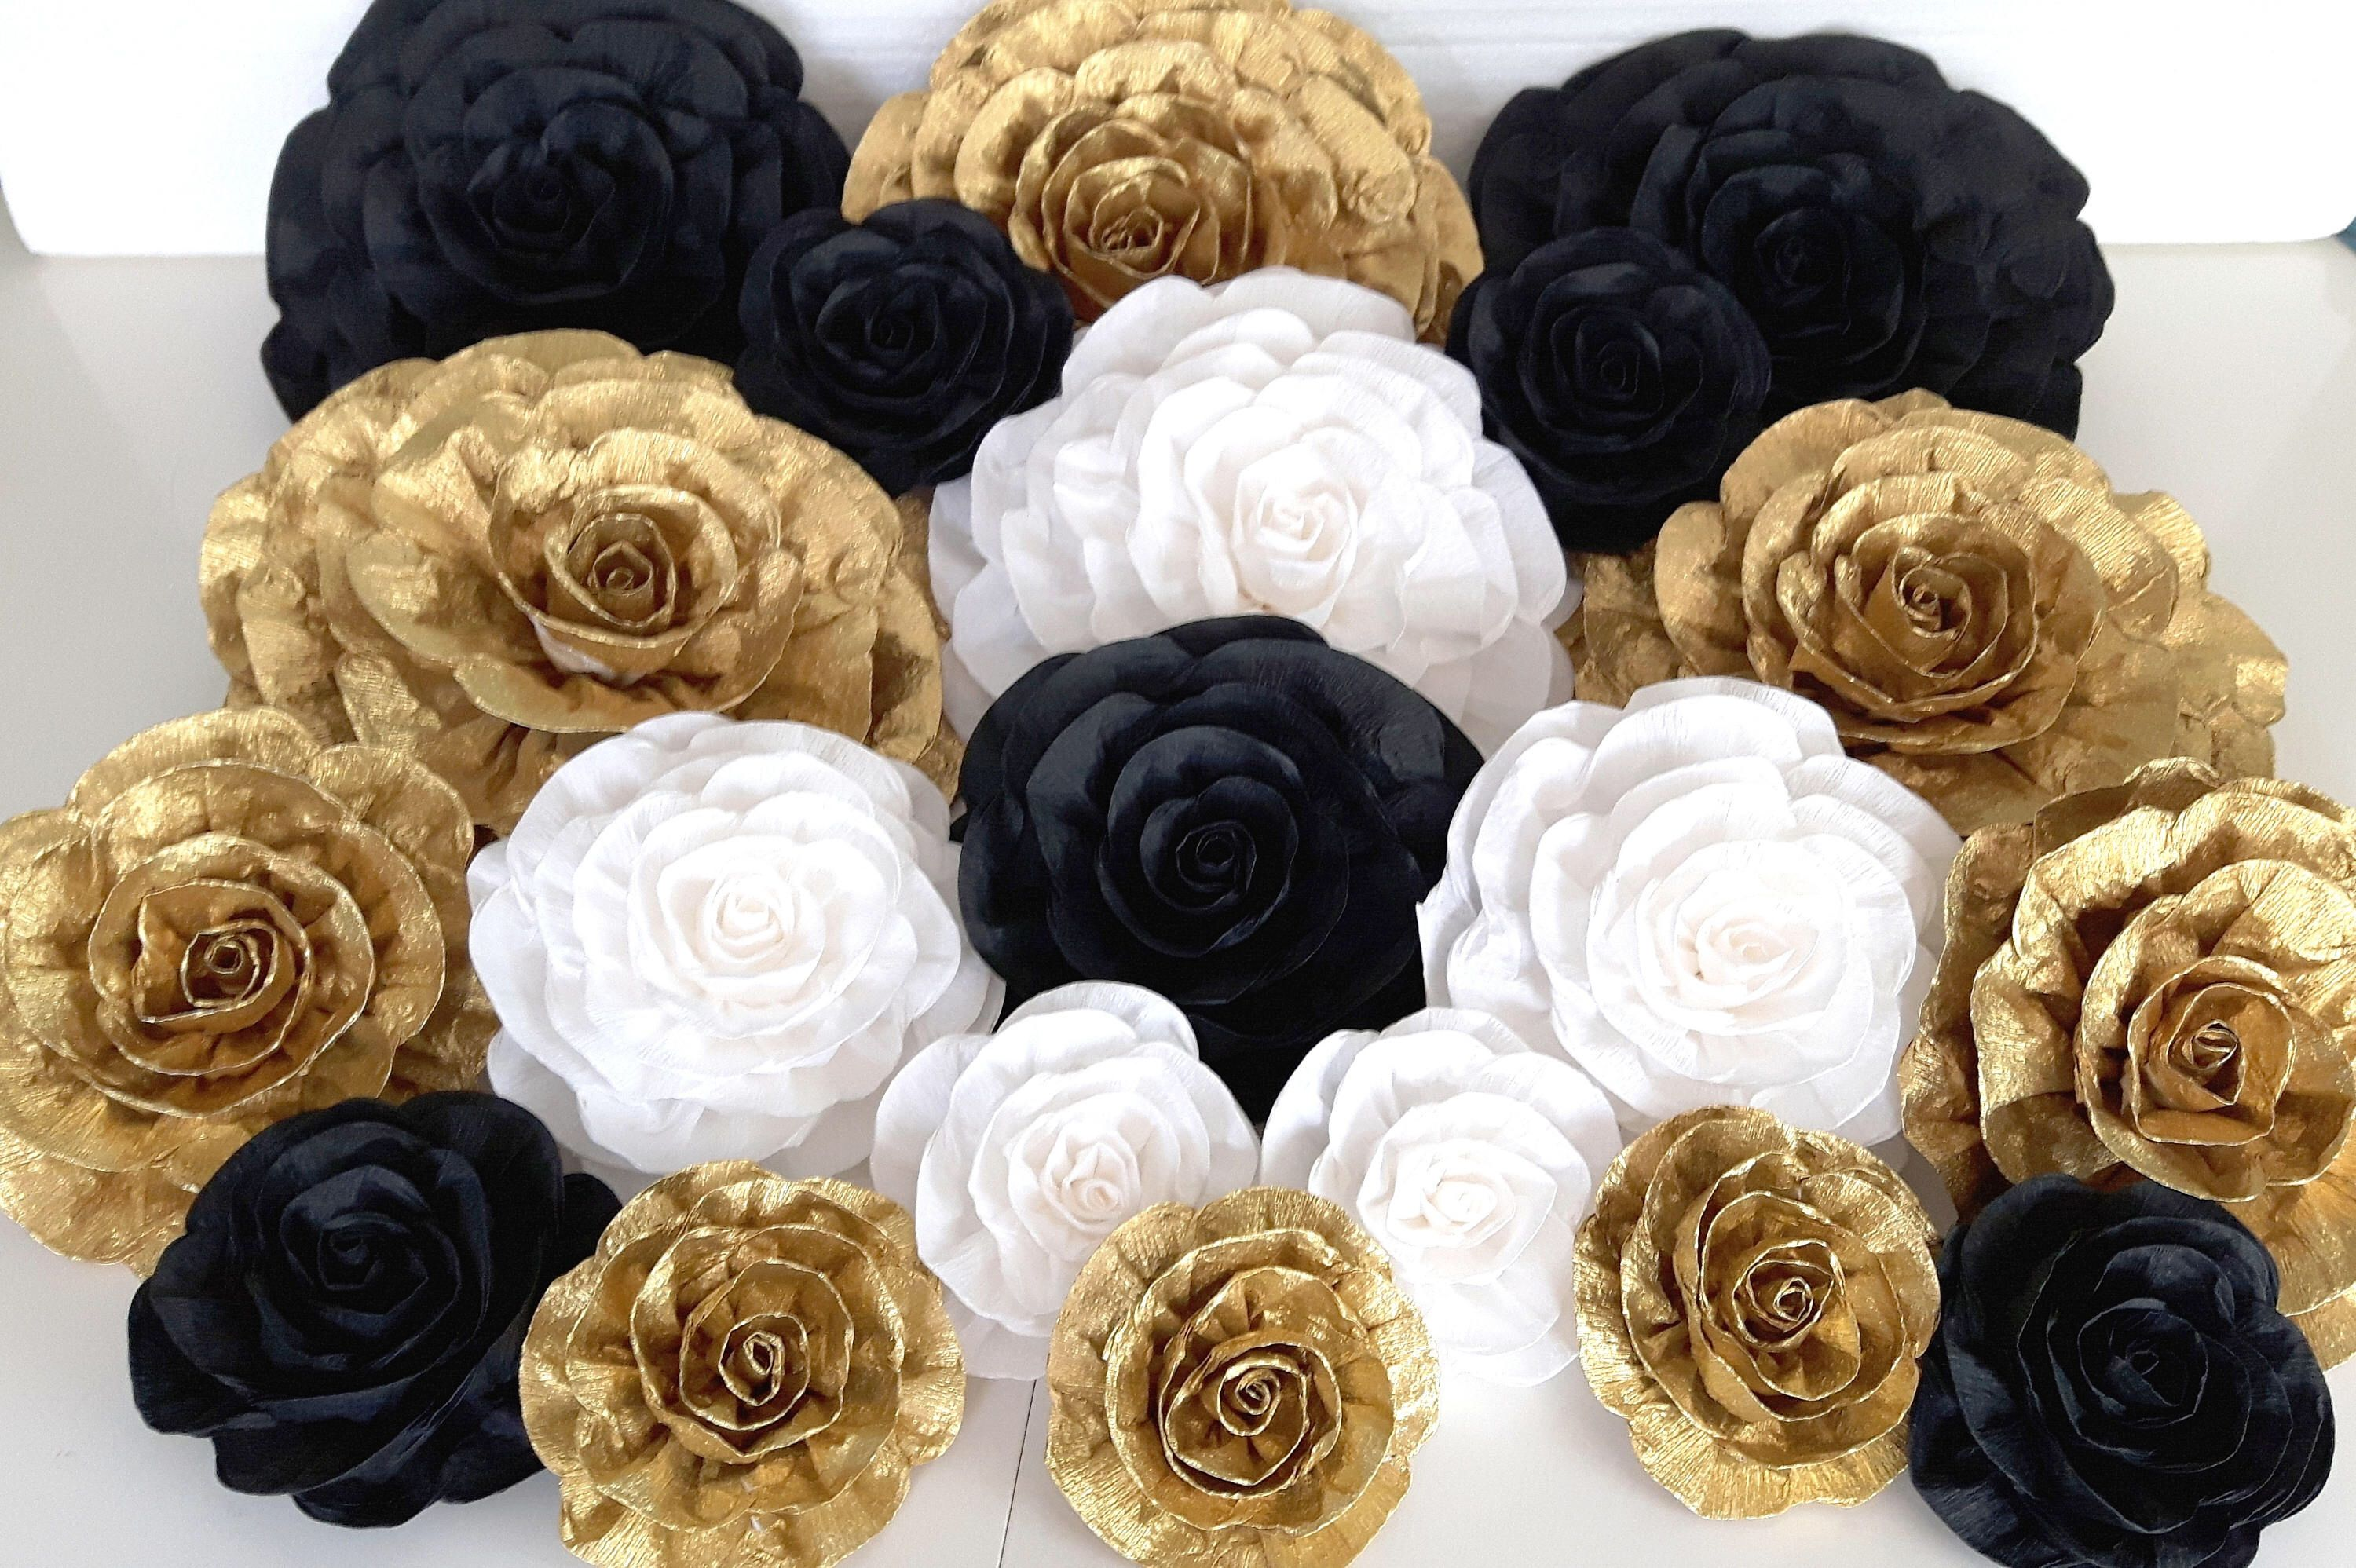 12 Large Paper Flowers Gold Black White Nursery Wall Decor Weding